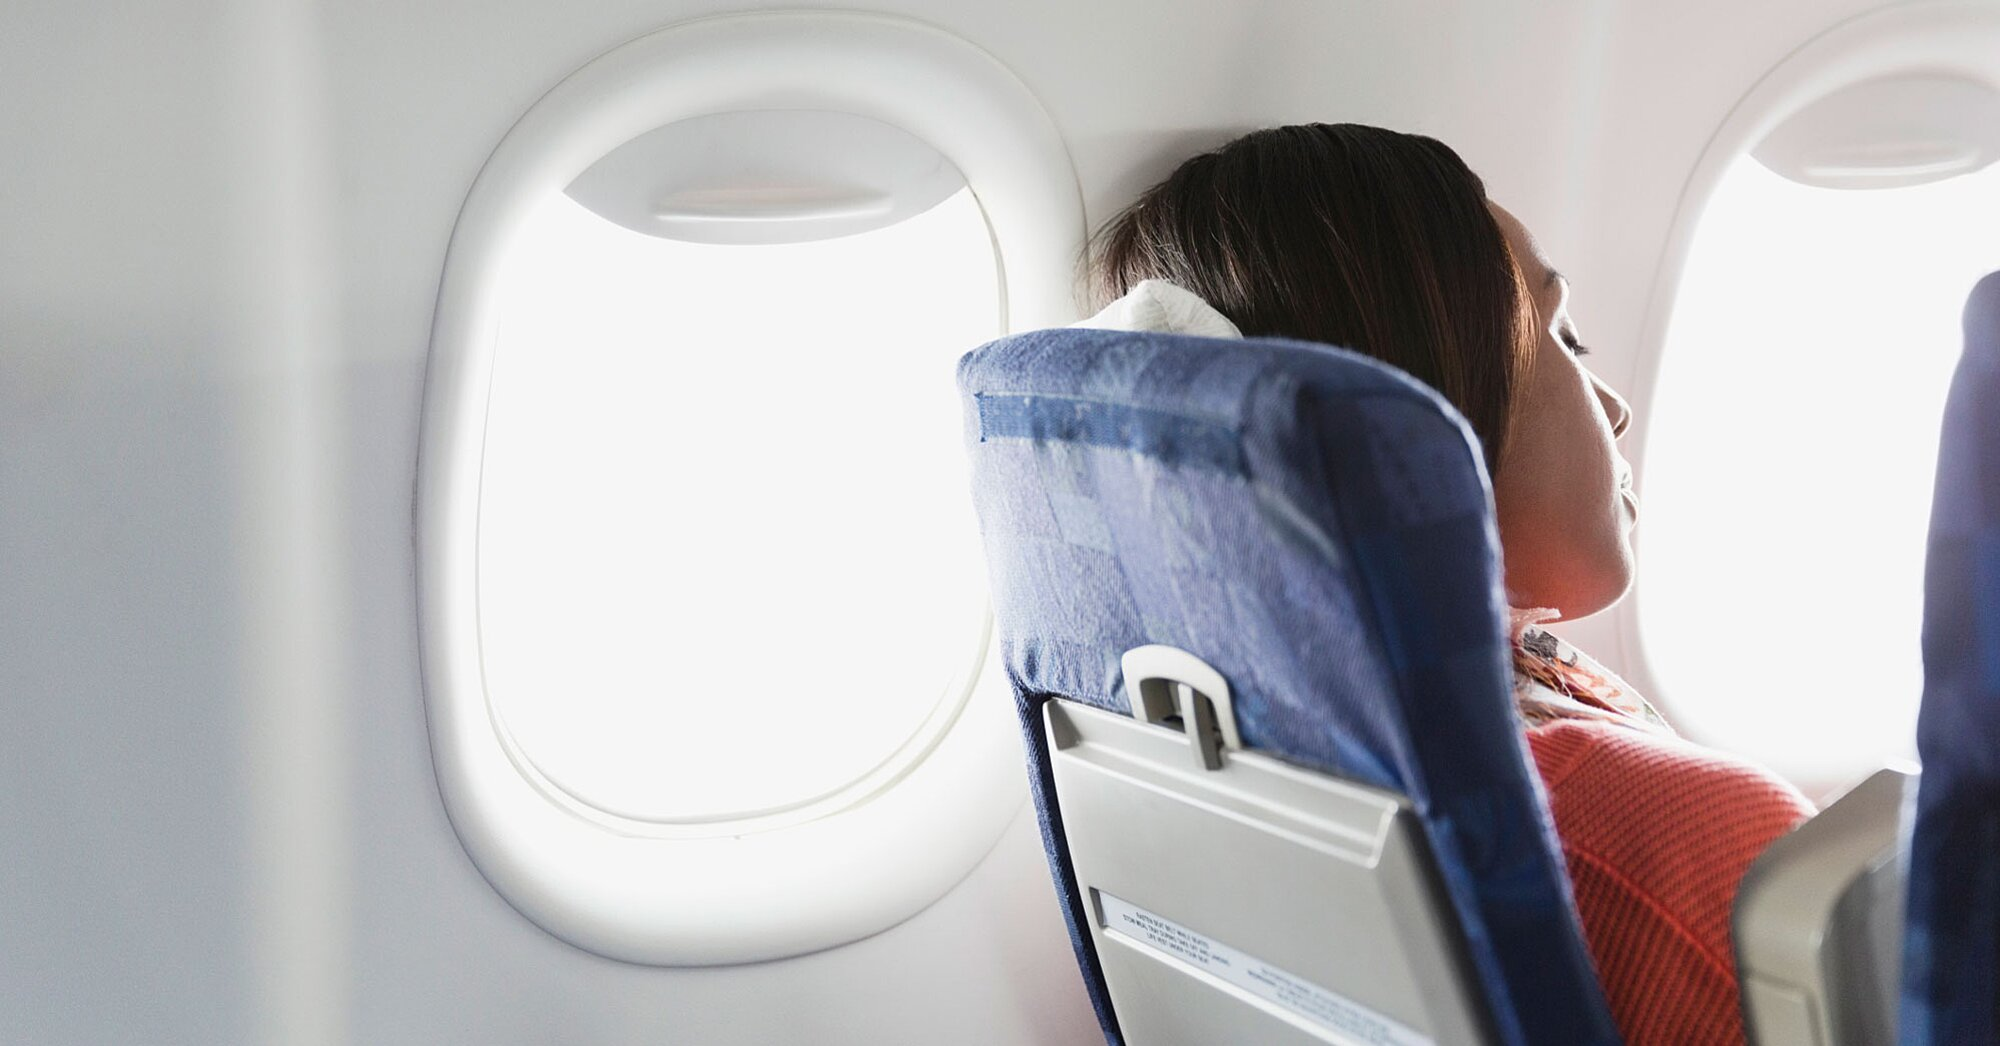 What Really Happens When You Don't Turn off Your Cell Phone on a Plane